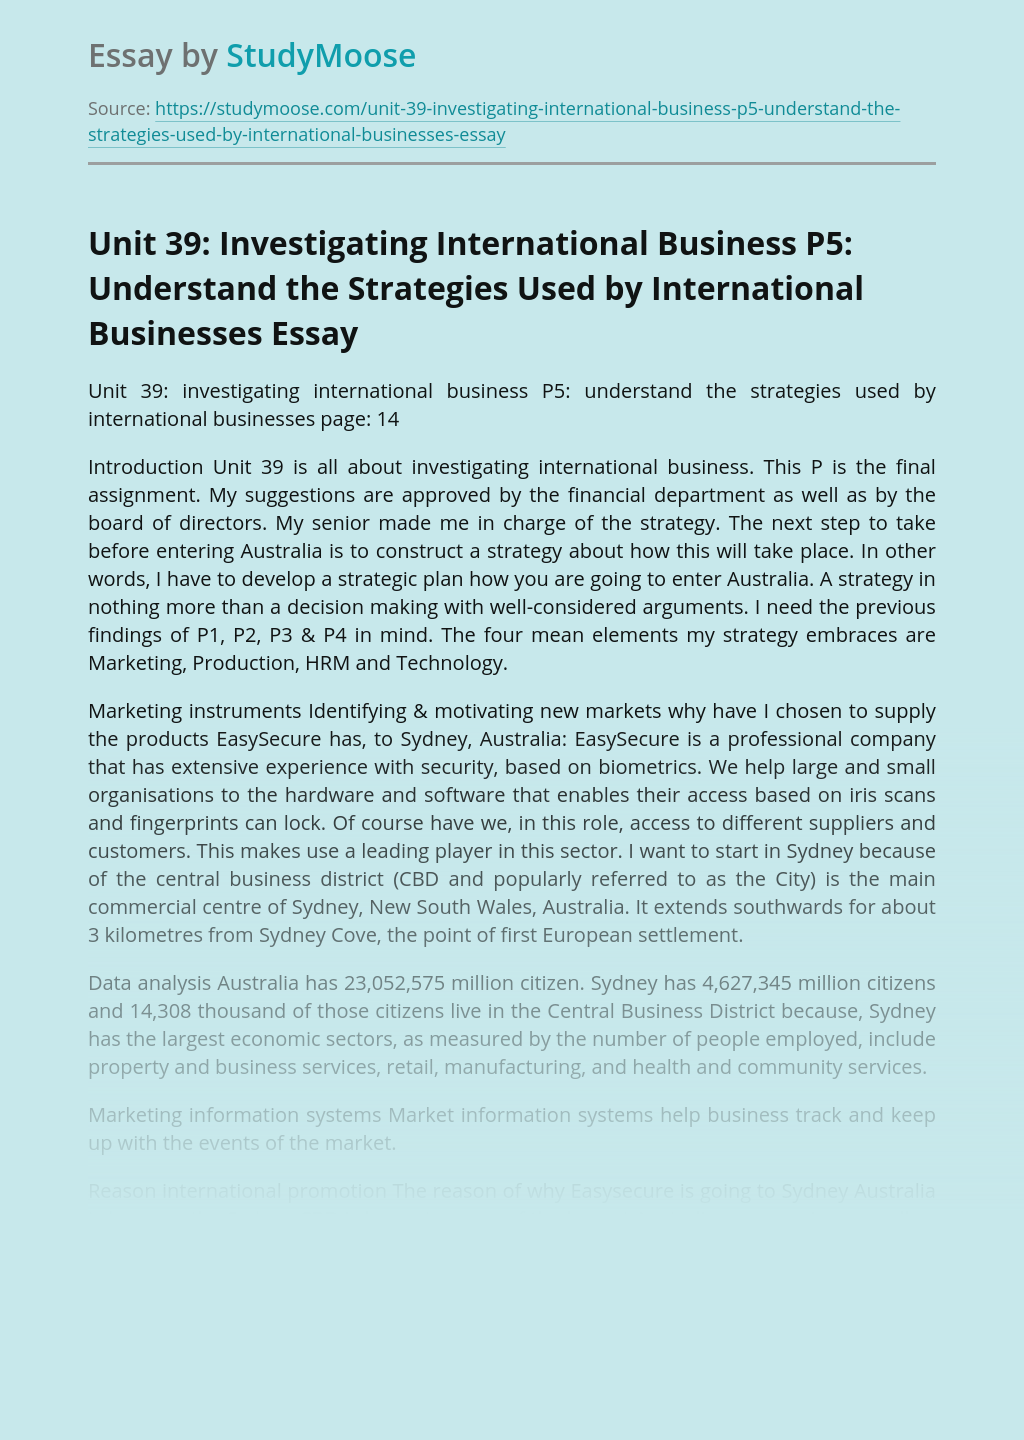 Unit 39: Investigating International Business P5: Understand the Strategies Used by International Businesses